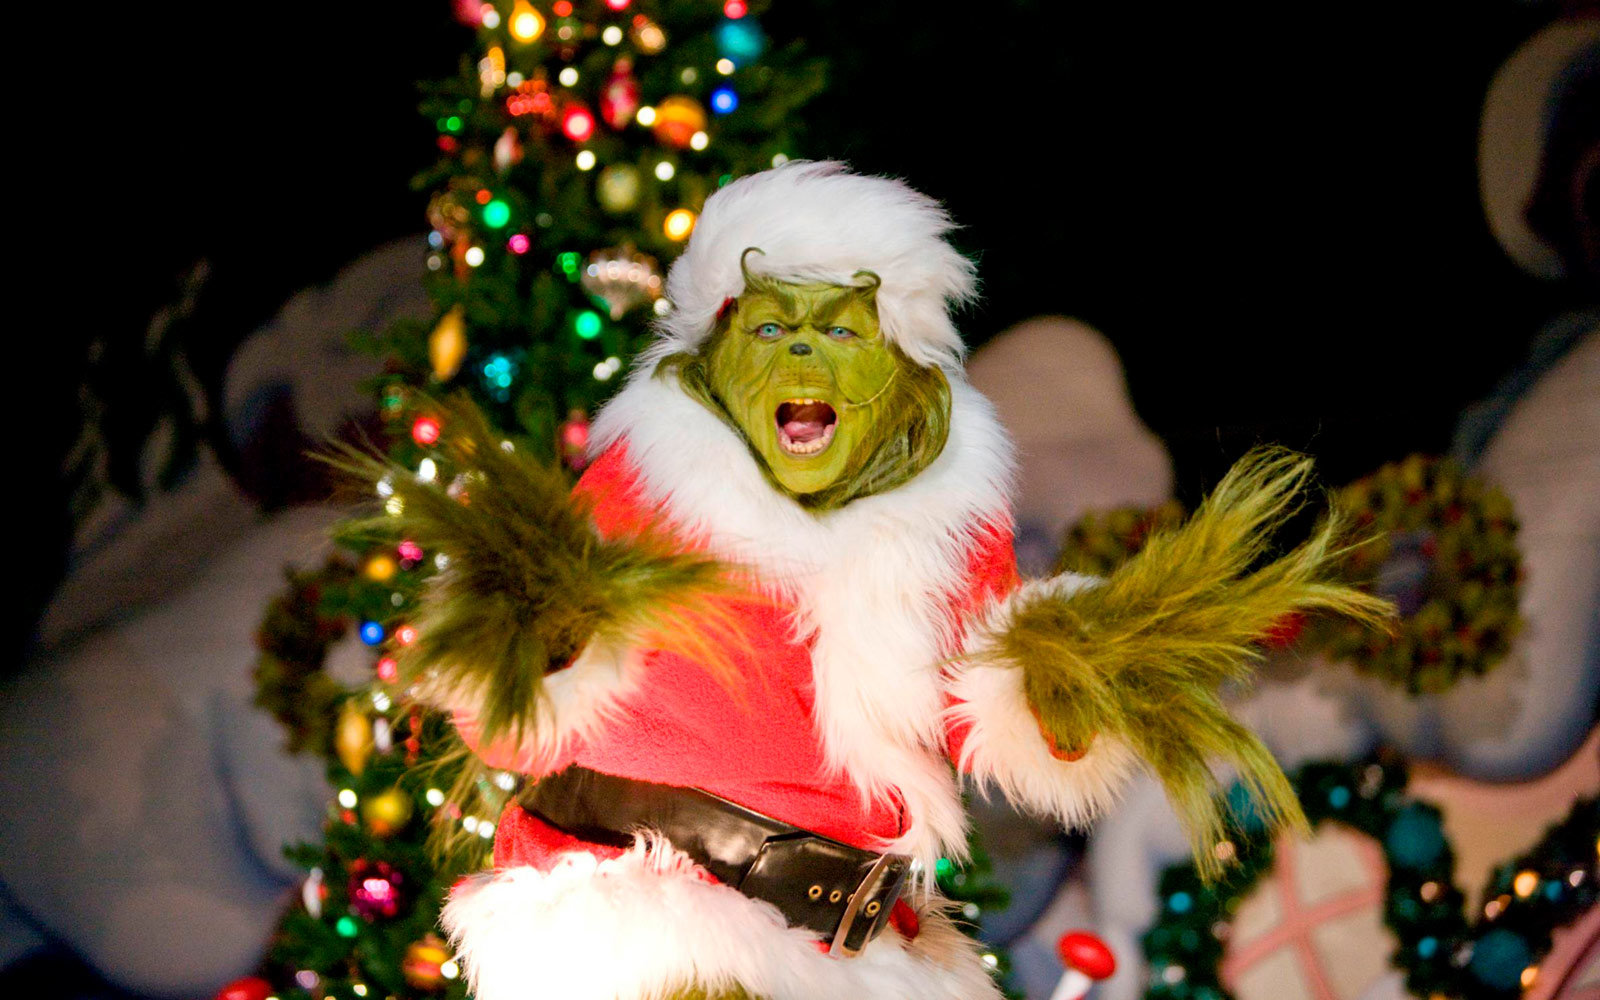 Grinch at Whoville